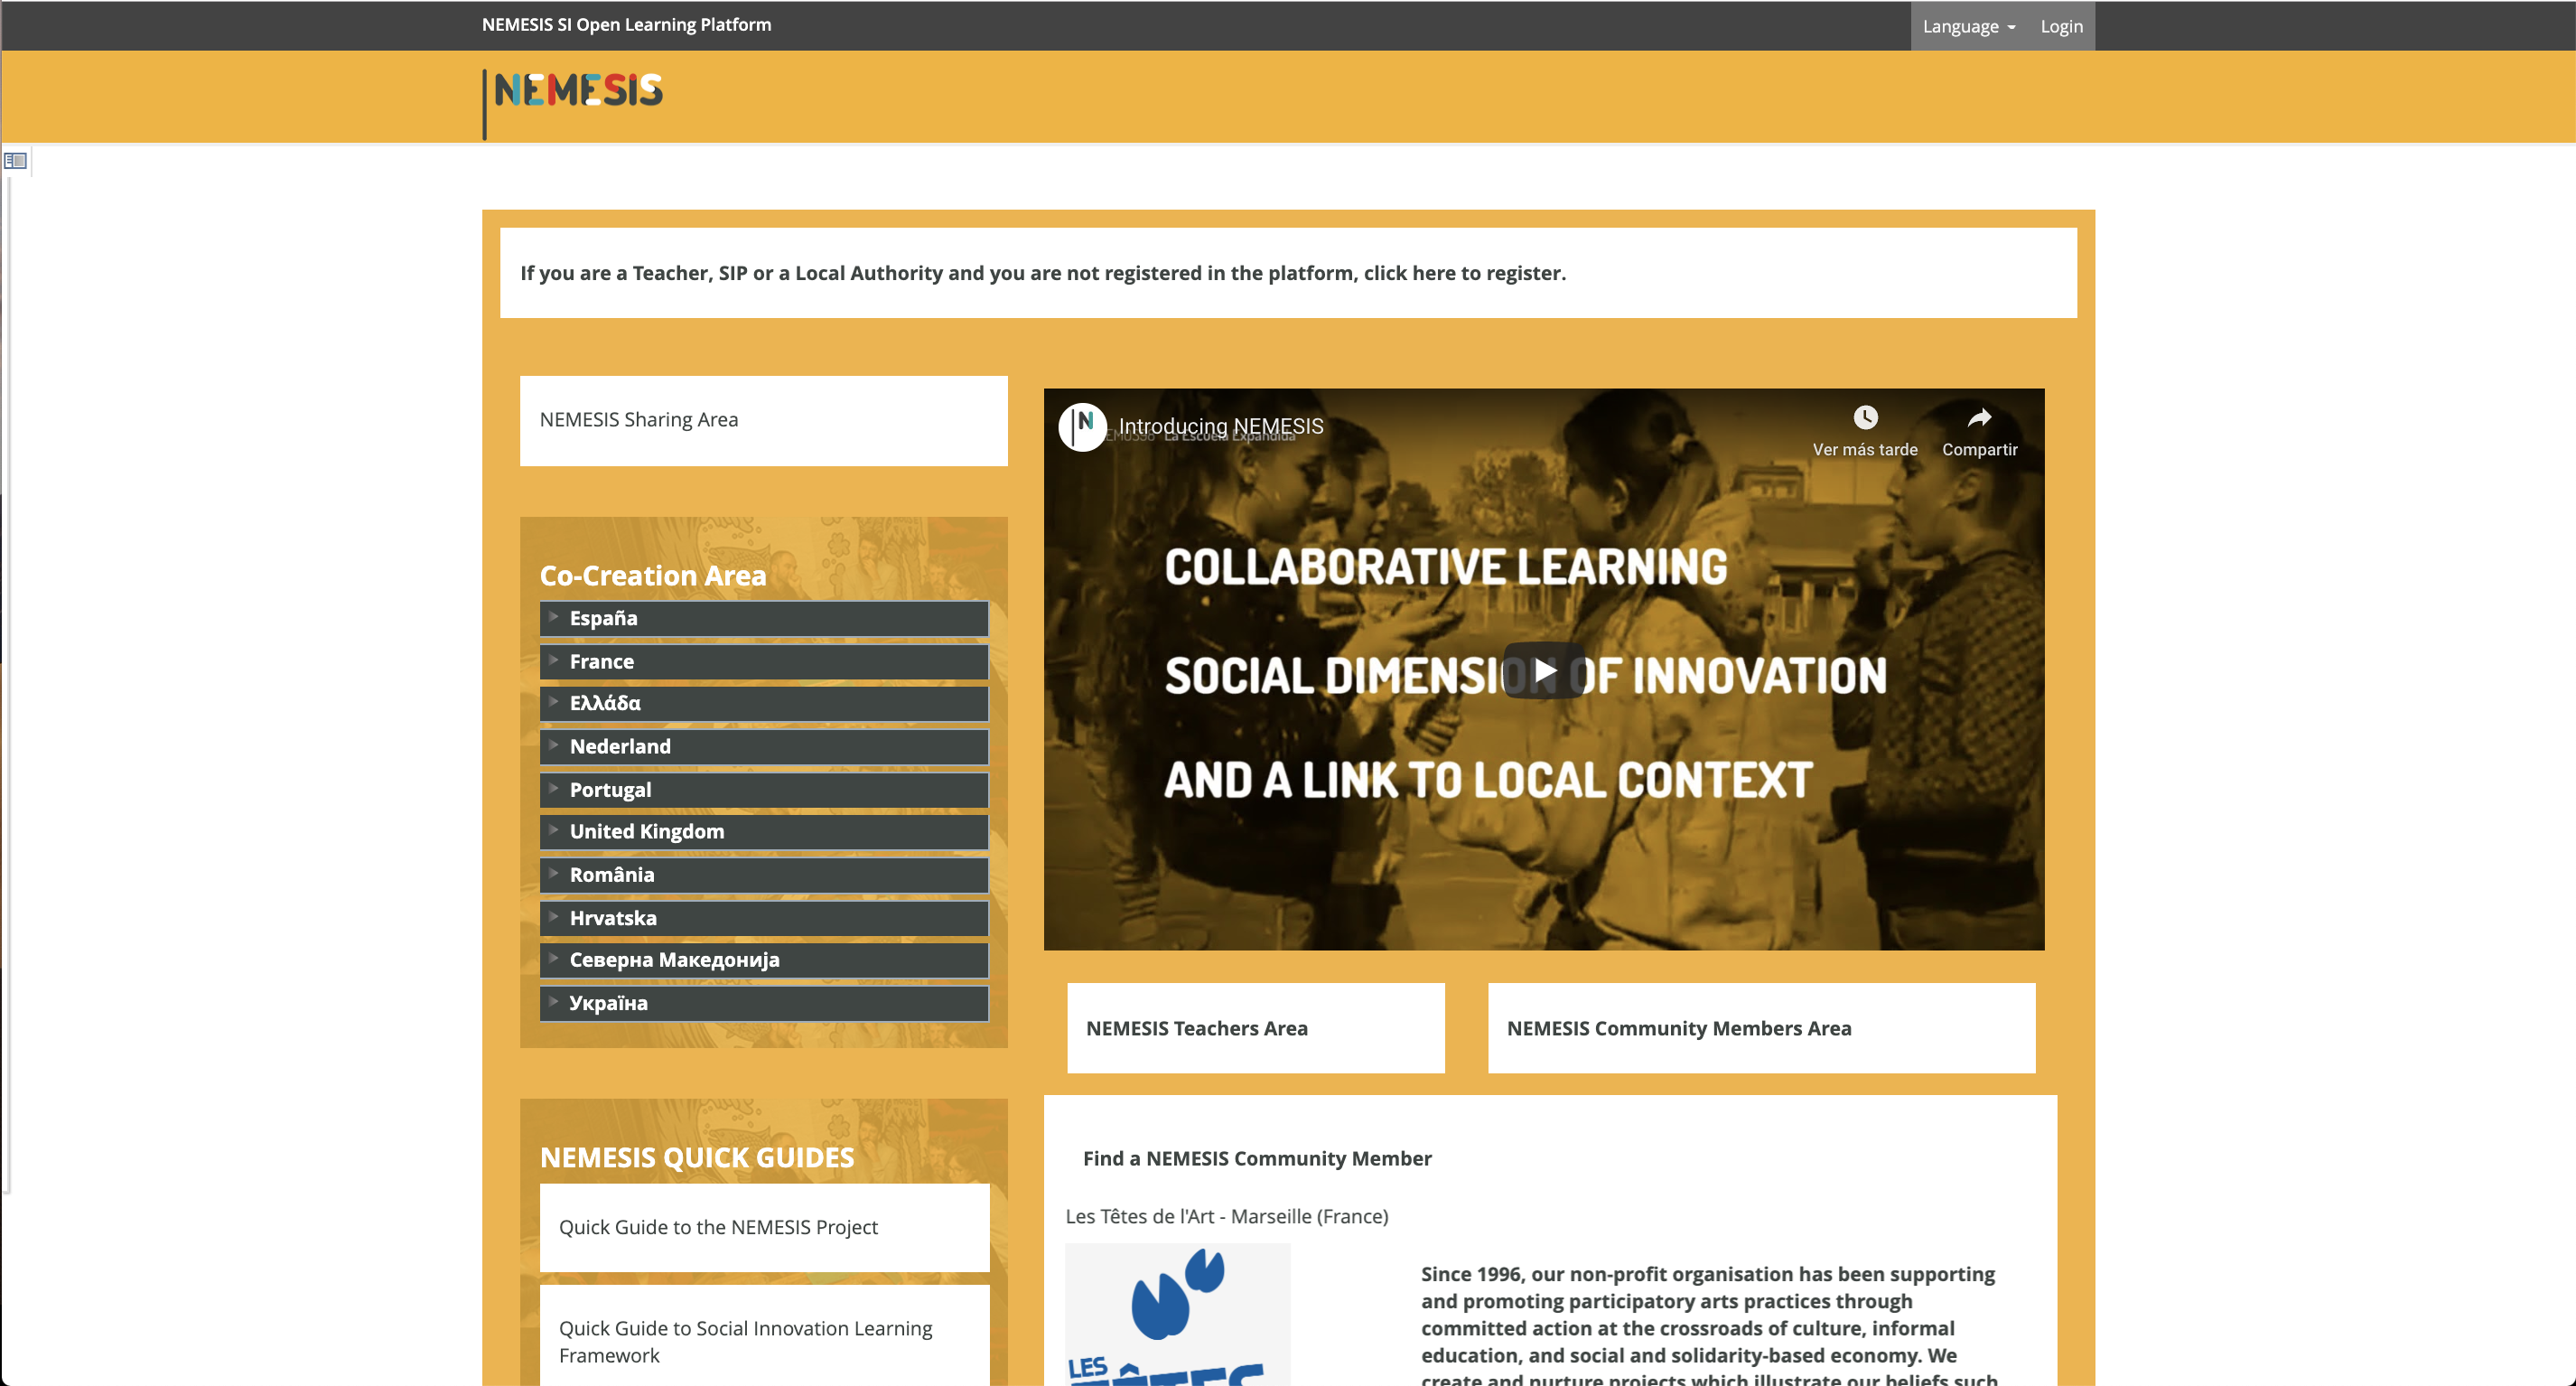 Launching the online learning platform: A new shared space to bind the growing NEMESIS community